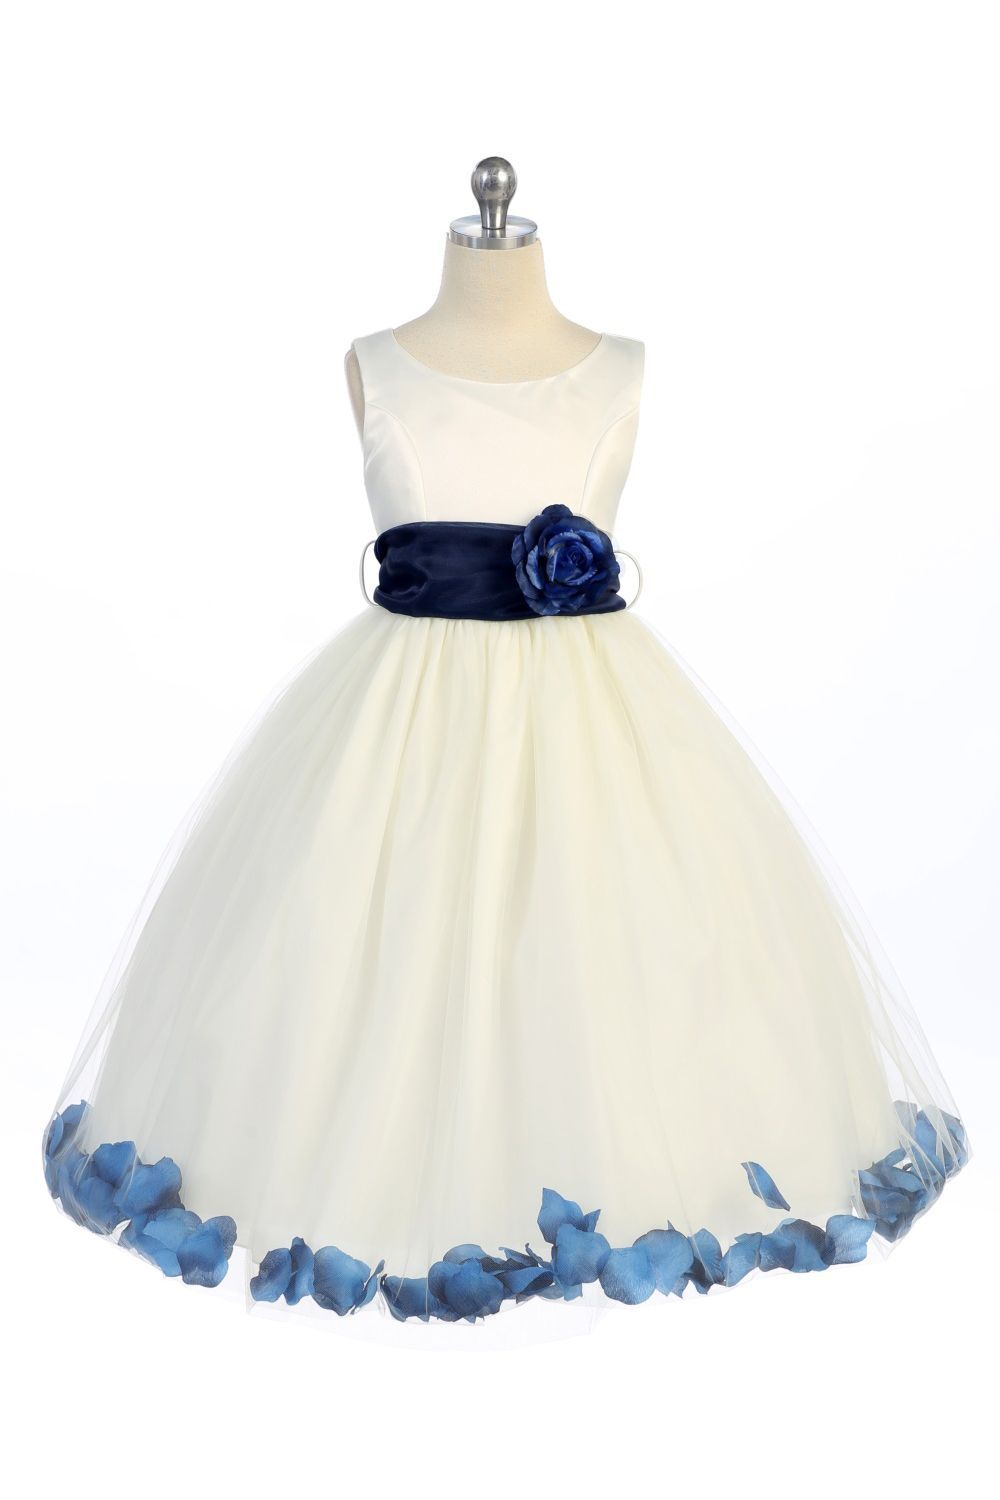 Ivorynavy blue satin tulle petal flower girl dress with sash ivorynavy blue satin tulle petal flower girl dress with sash flower o152 izmirmasajfo Image collections